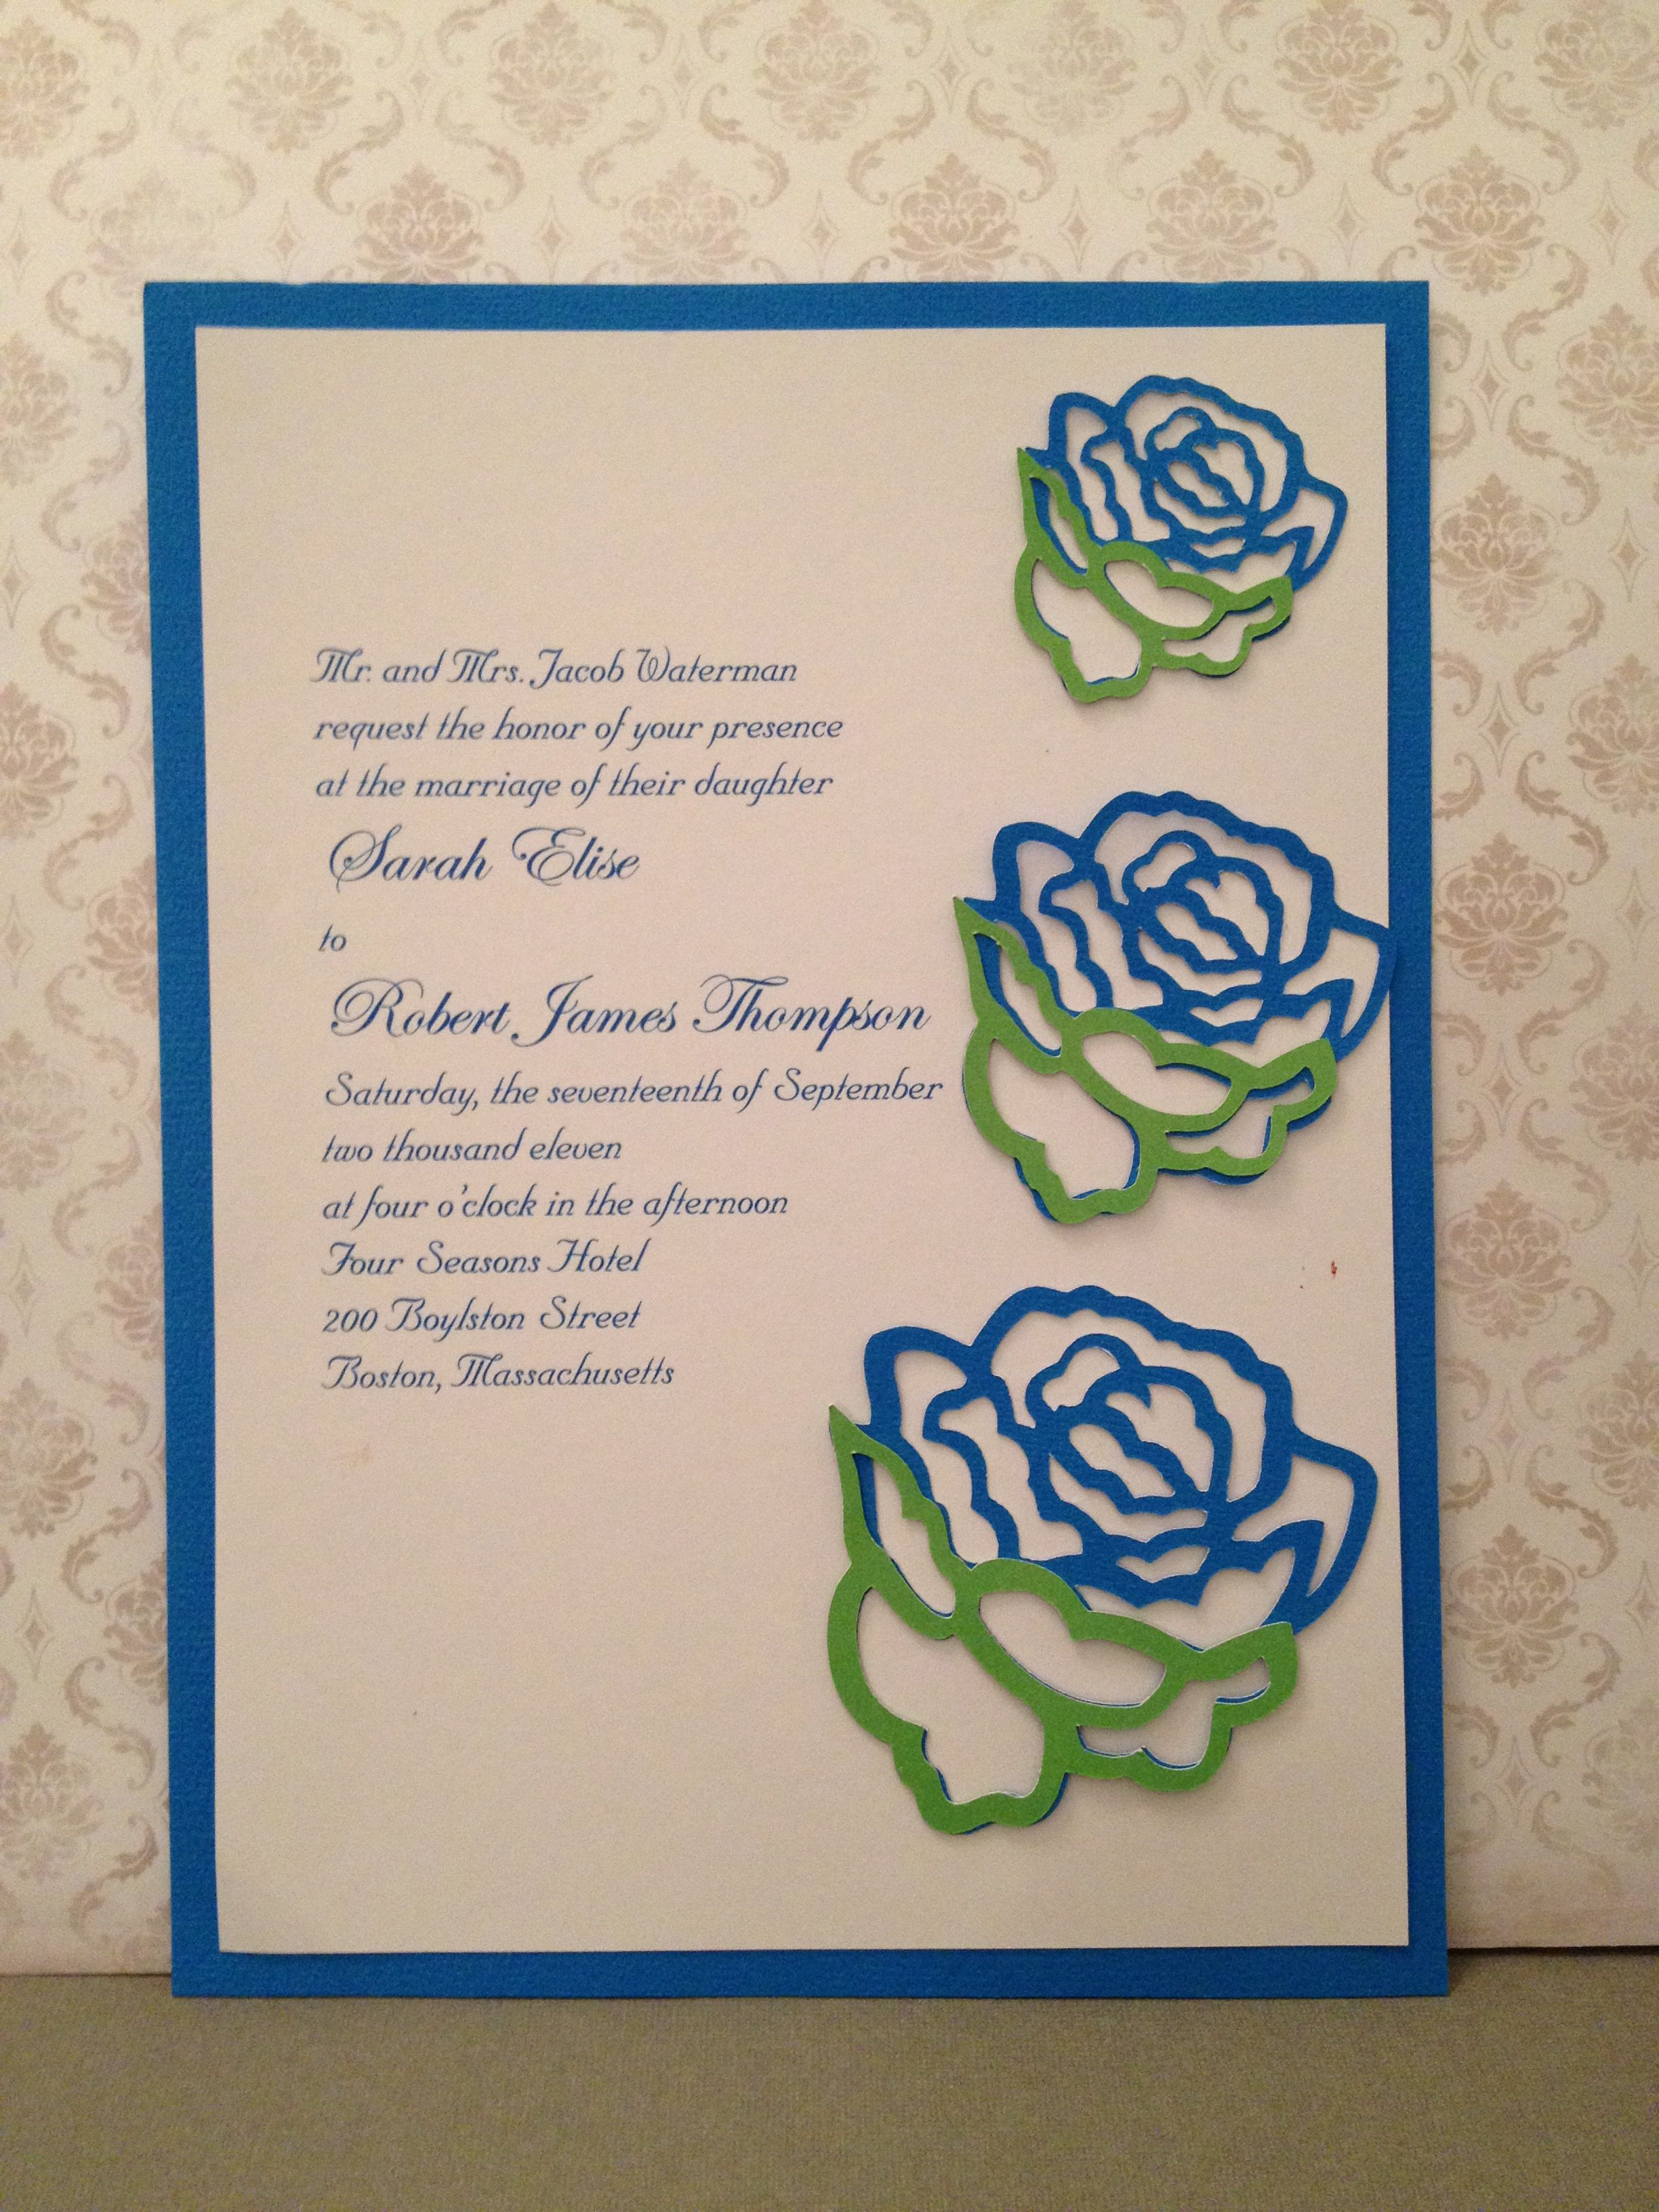 Rose Wedding invitation is 6x8 and made from cardstock. I